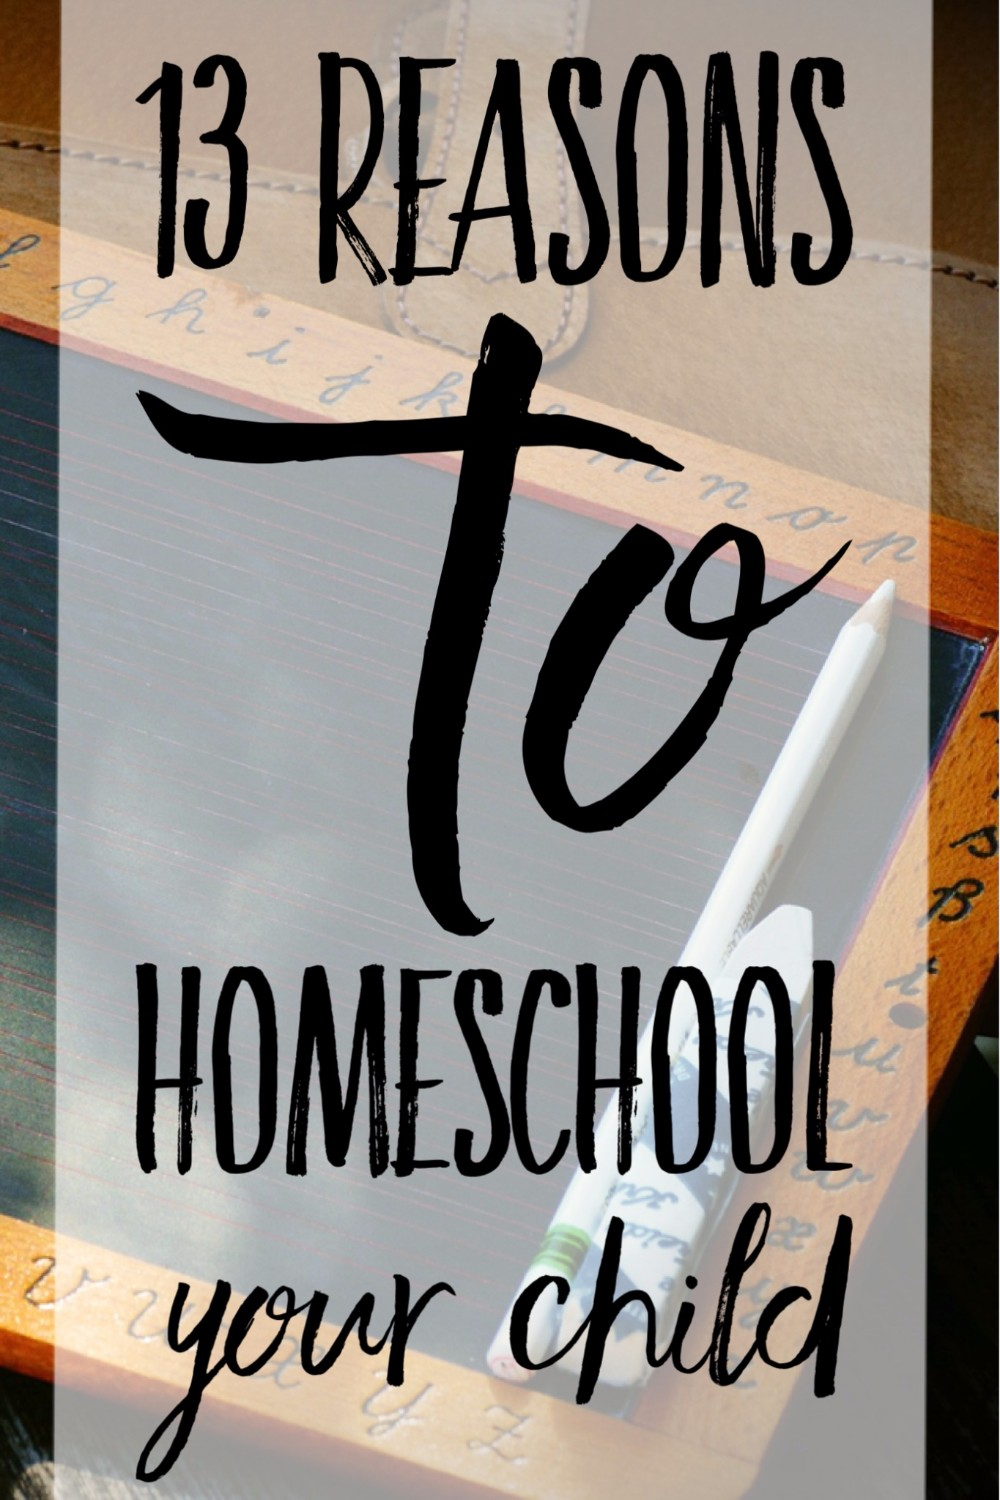 Yup! After reading this I am sure I will homeschool my children. So many great reasons to homeschool